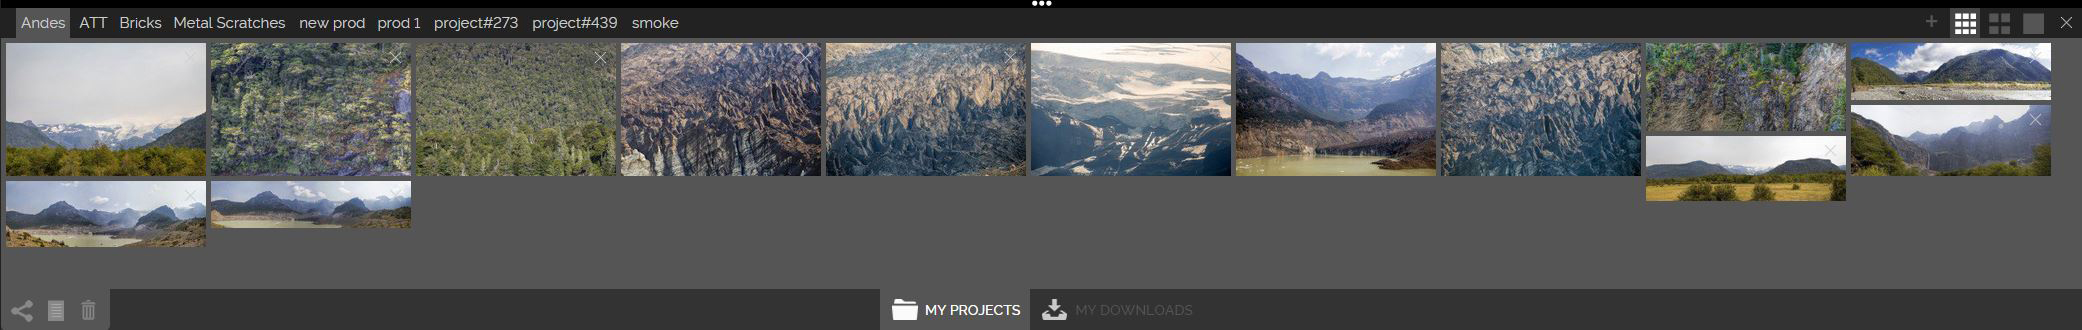 Lightbox with tabbed projects along the top. Each project is shareable. Users also have the ability to switch to the downloads tab and view their image download history with filters by date and image category.